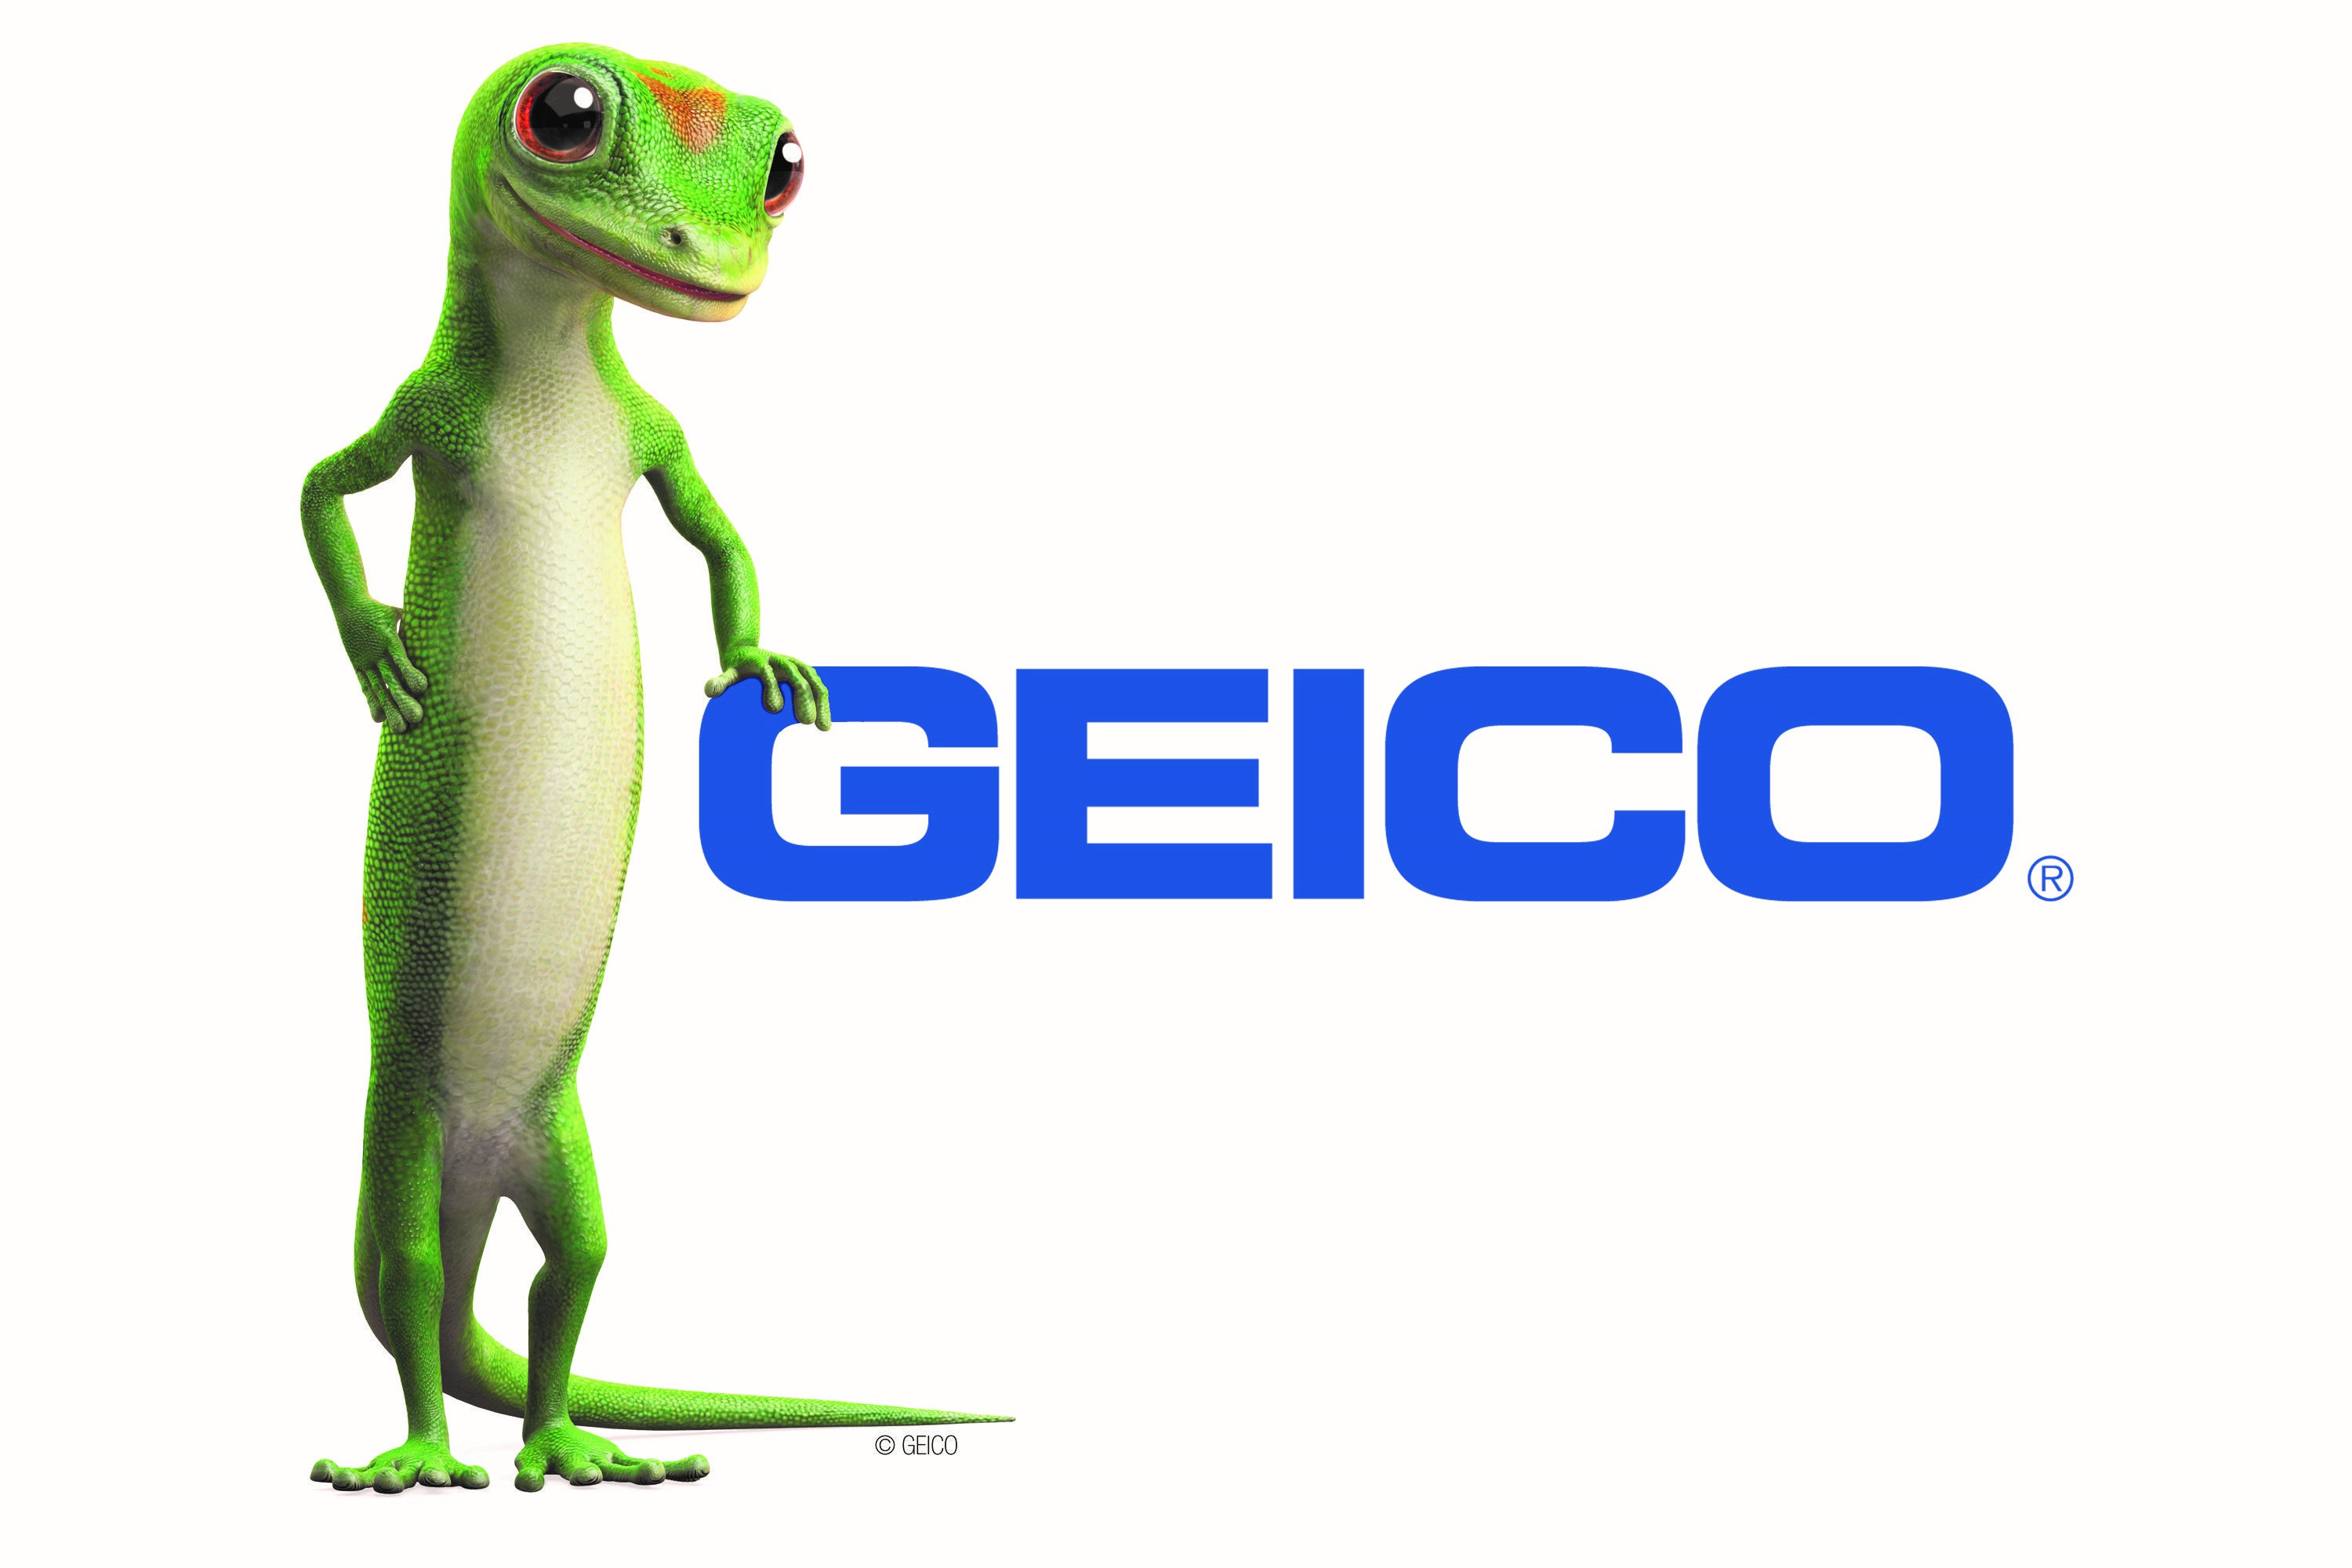 Thank you, Geico, for sponsoring EIJ15! Car insurance